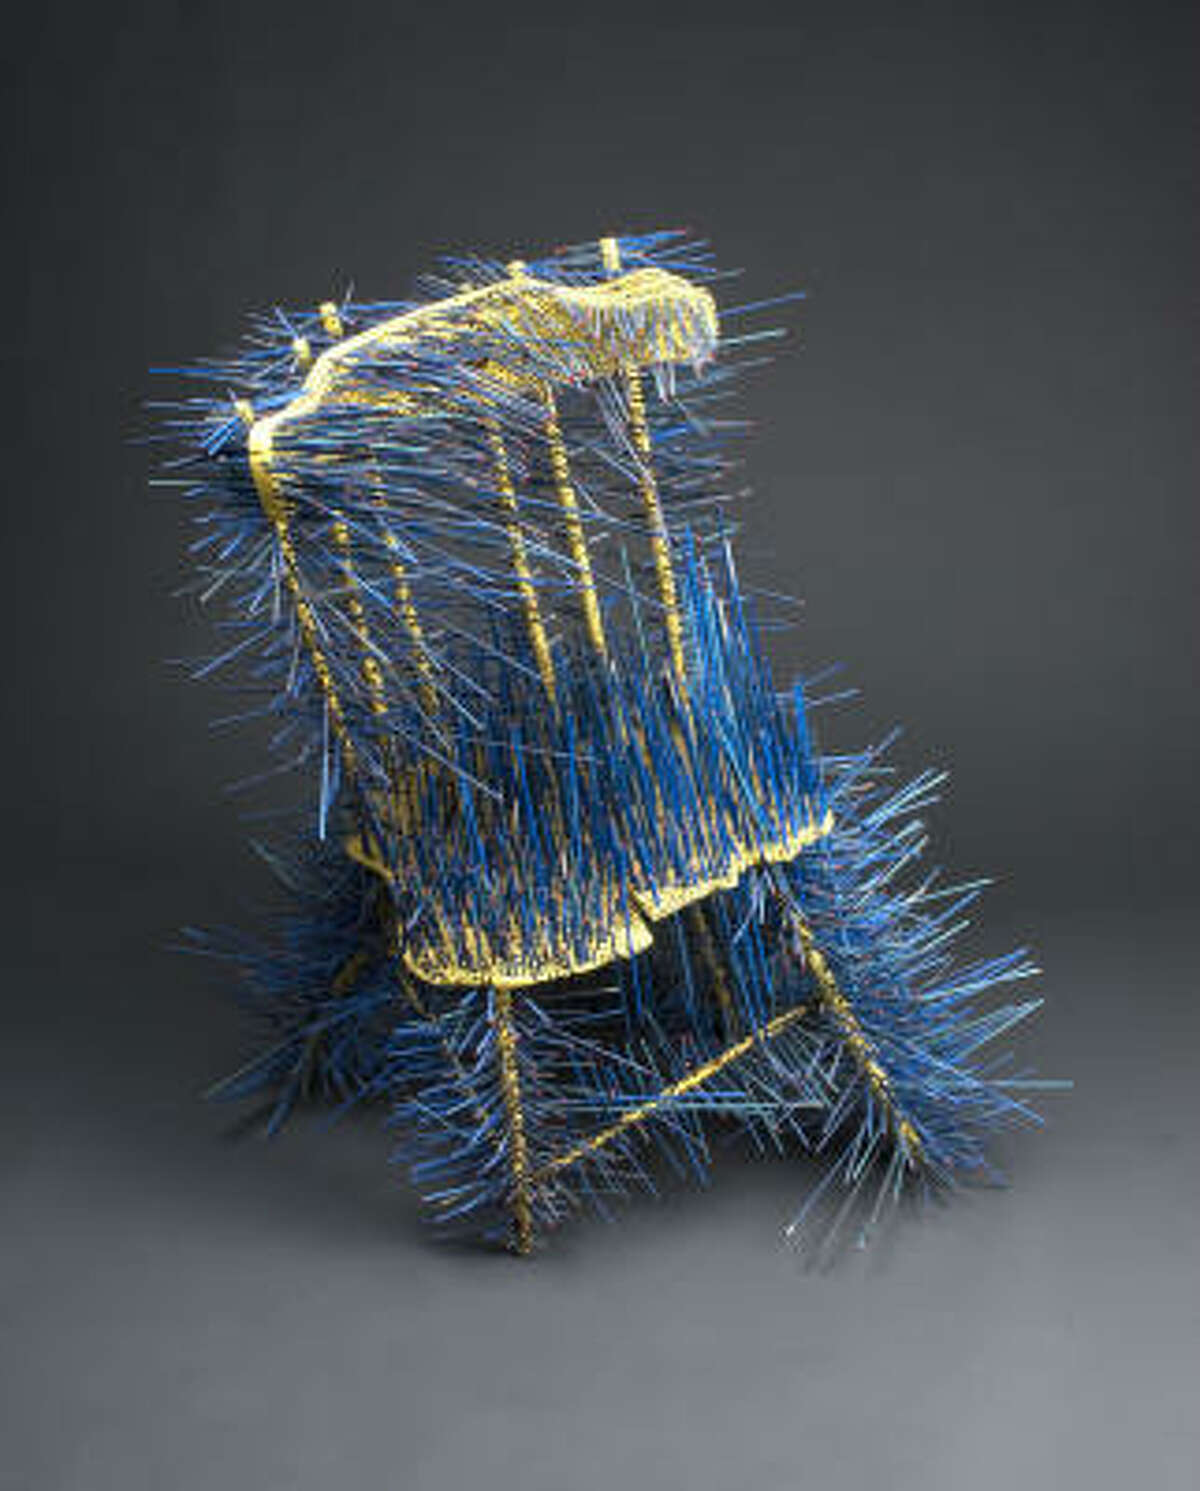 Jennifer Marsh's Blue Chair, 2005, is part of the Houston Center for Contemporary Craft's Challenge VII: dysFUNctional exhibit, which is designed to push the boundaries of what is considered craft.